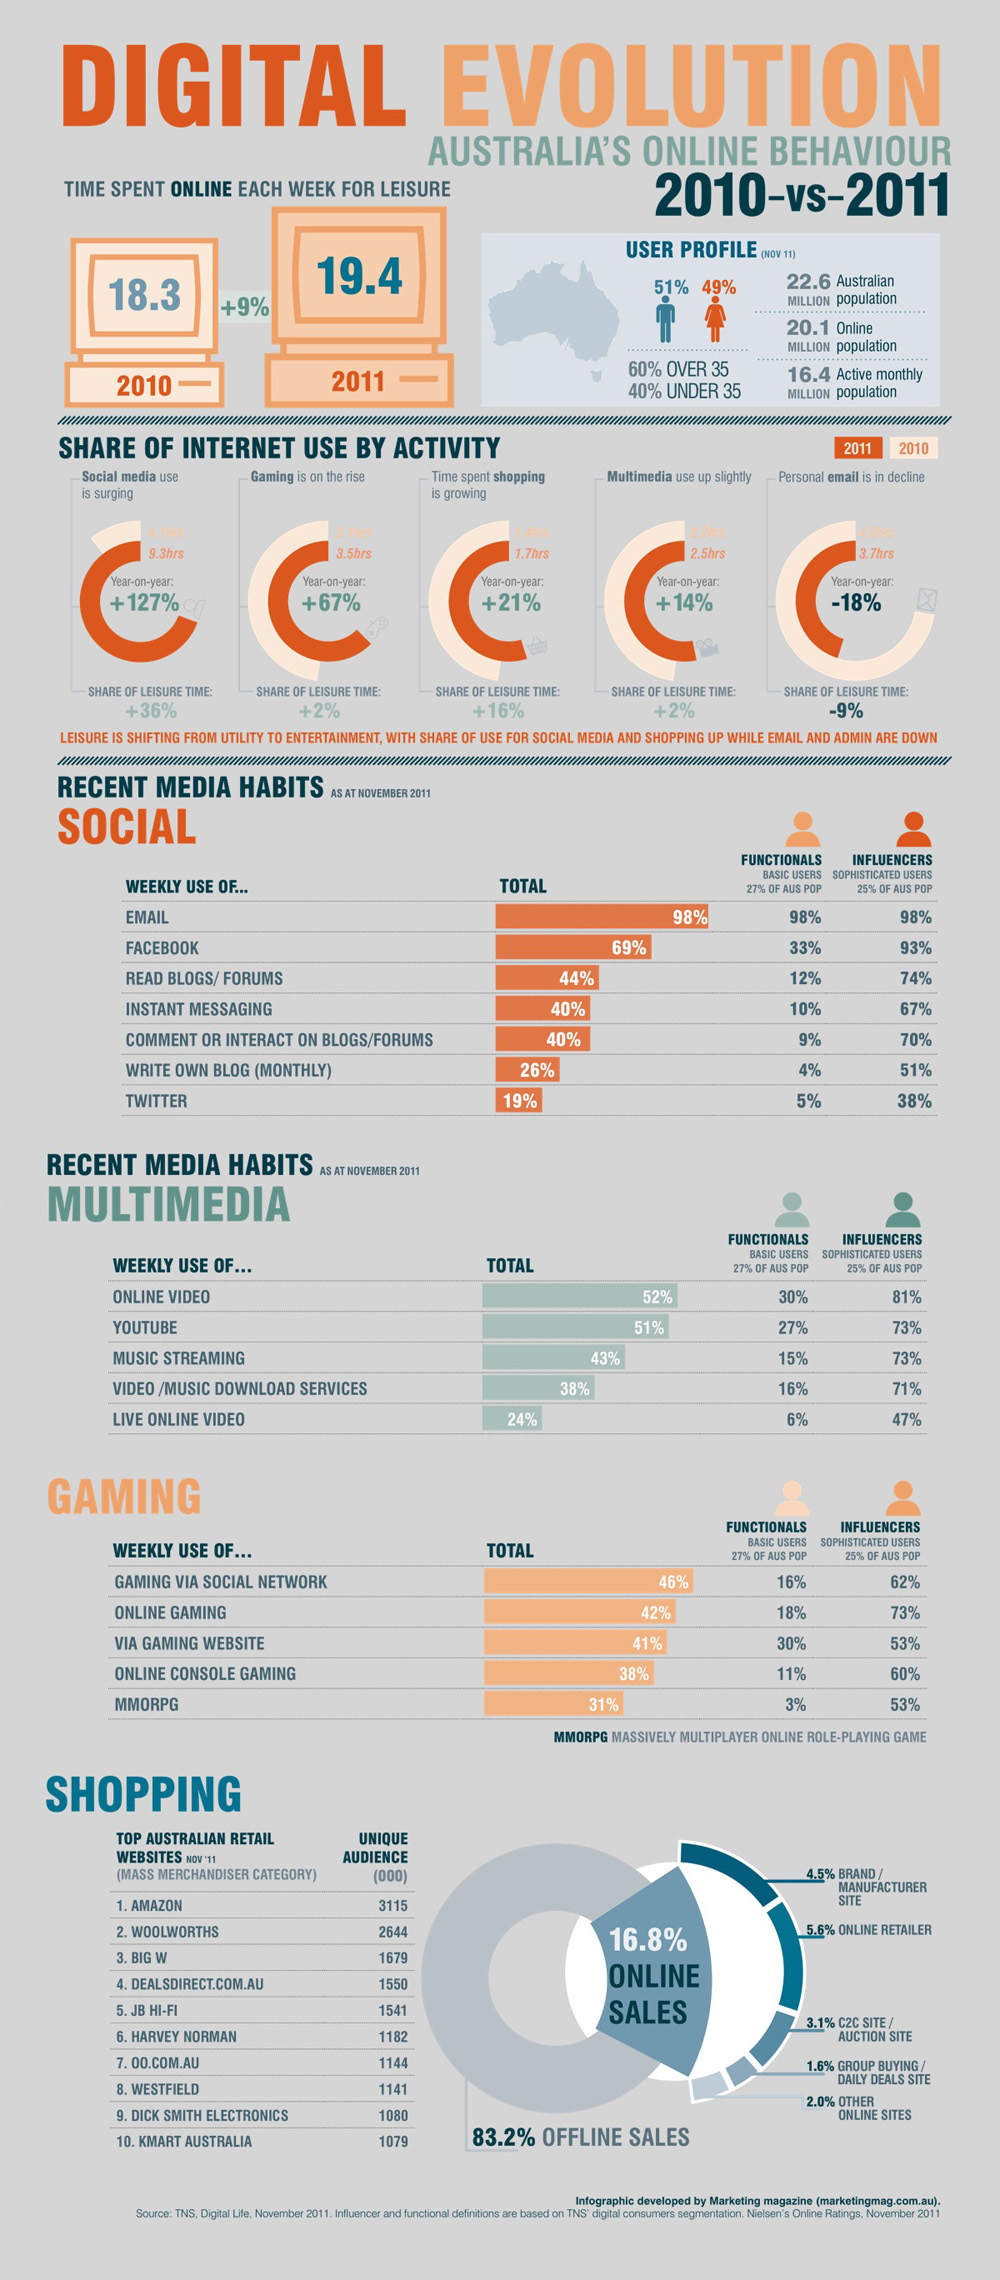 A few interesting trends in this info-graphic courtesy of Marketing Magazine: - Time spent online each week for leisure has increased by 9%. - Only 2.5 million Australians are NOT online.  - 127% increase in social media time. - 18% decrease in personal email time.  - 83% of sales are still offline.  http://www.marketingmag.com.au/news/infographic-australias-digital-evolution-2010-vs-2011-12148/?utm_medium=email&utm_campaign=enews+76&utm_content=enews+76+CID_237f29832b31264ea480c7a0b103875d&utm_source=&utm_term=INFOGRAPHIC